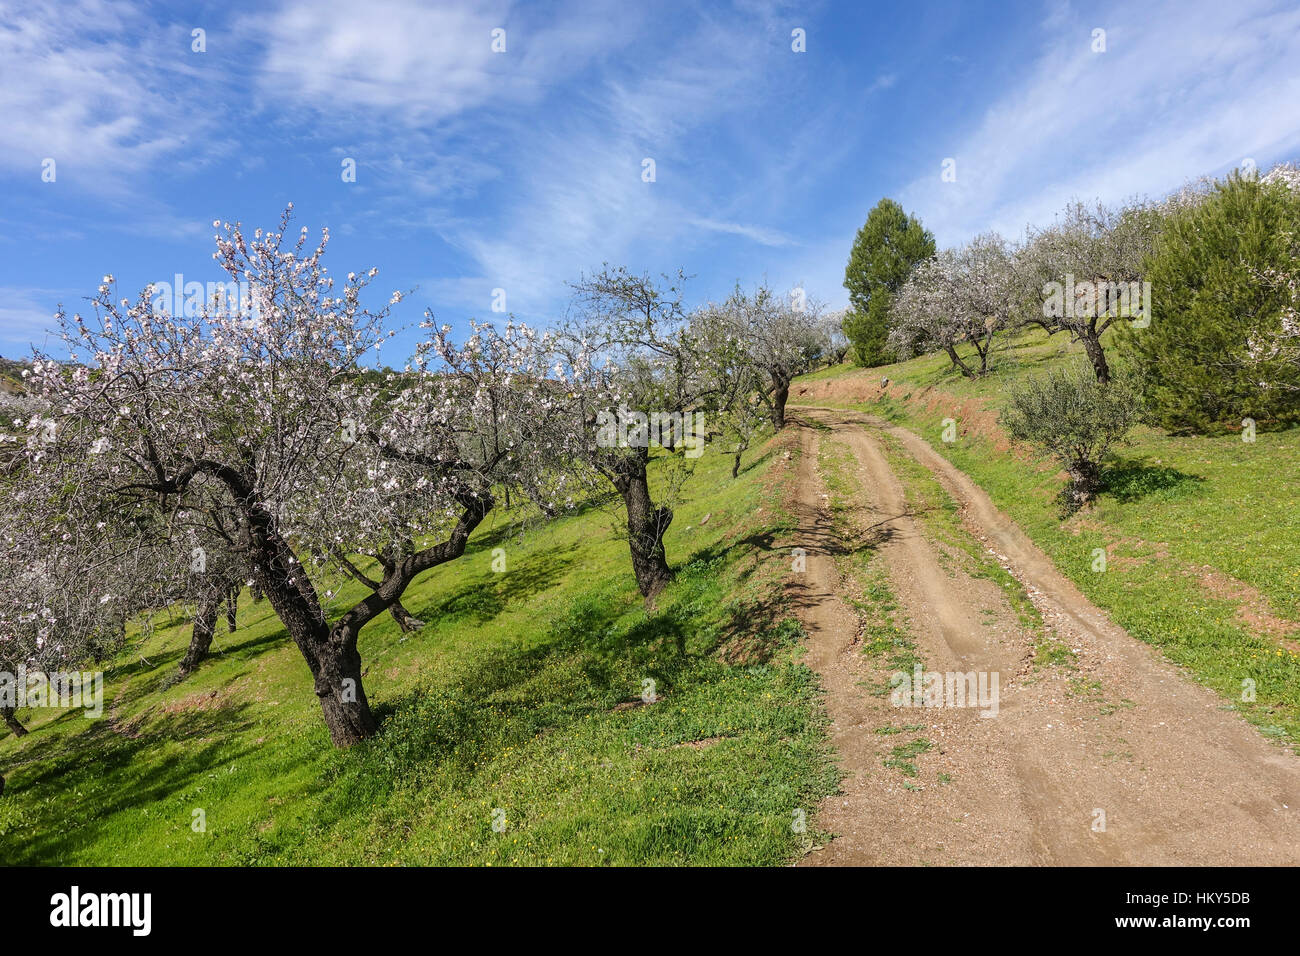 Andalusian countryside with blooming almond trees in january, Andalusia, Spain. - Stock Image